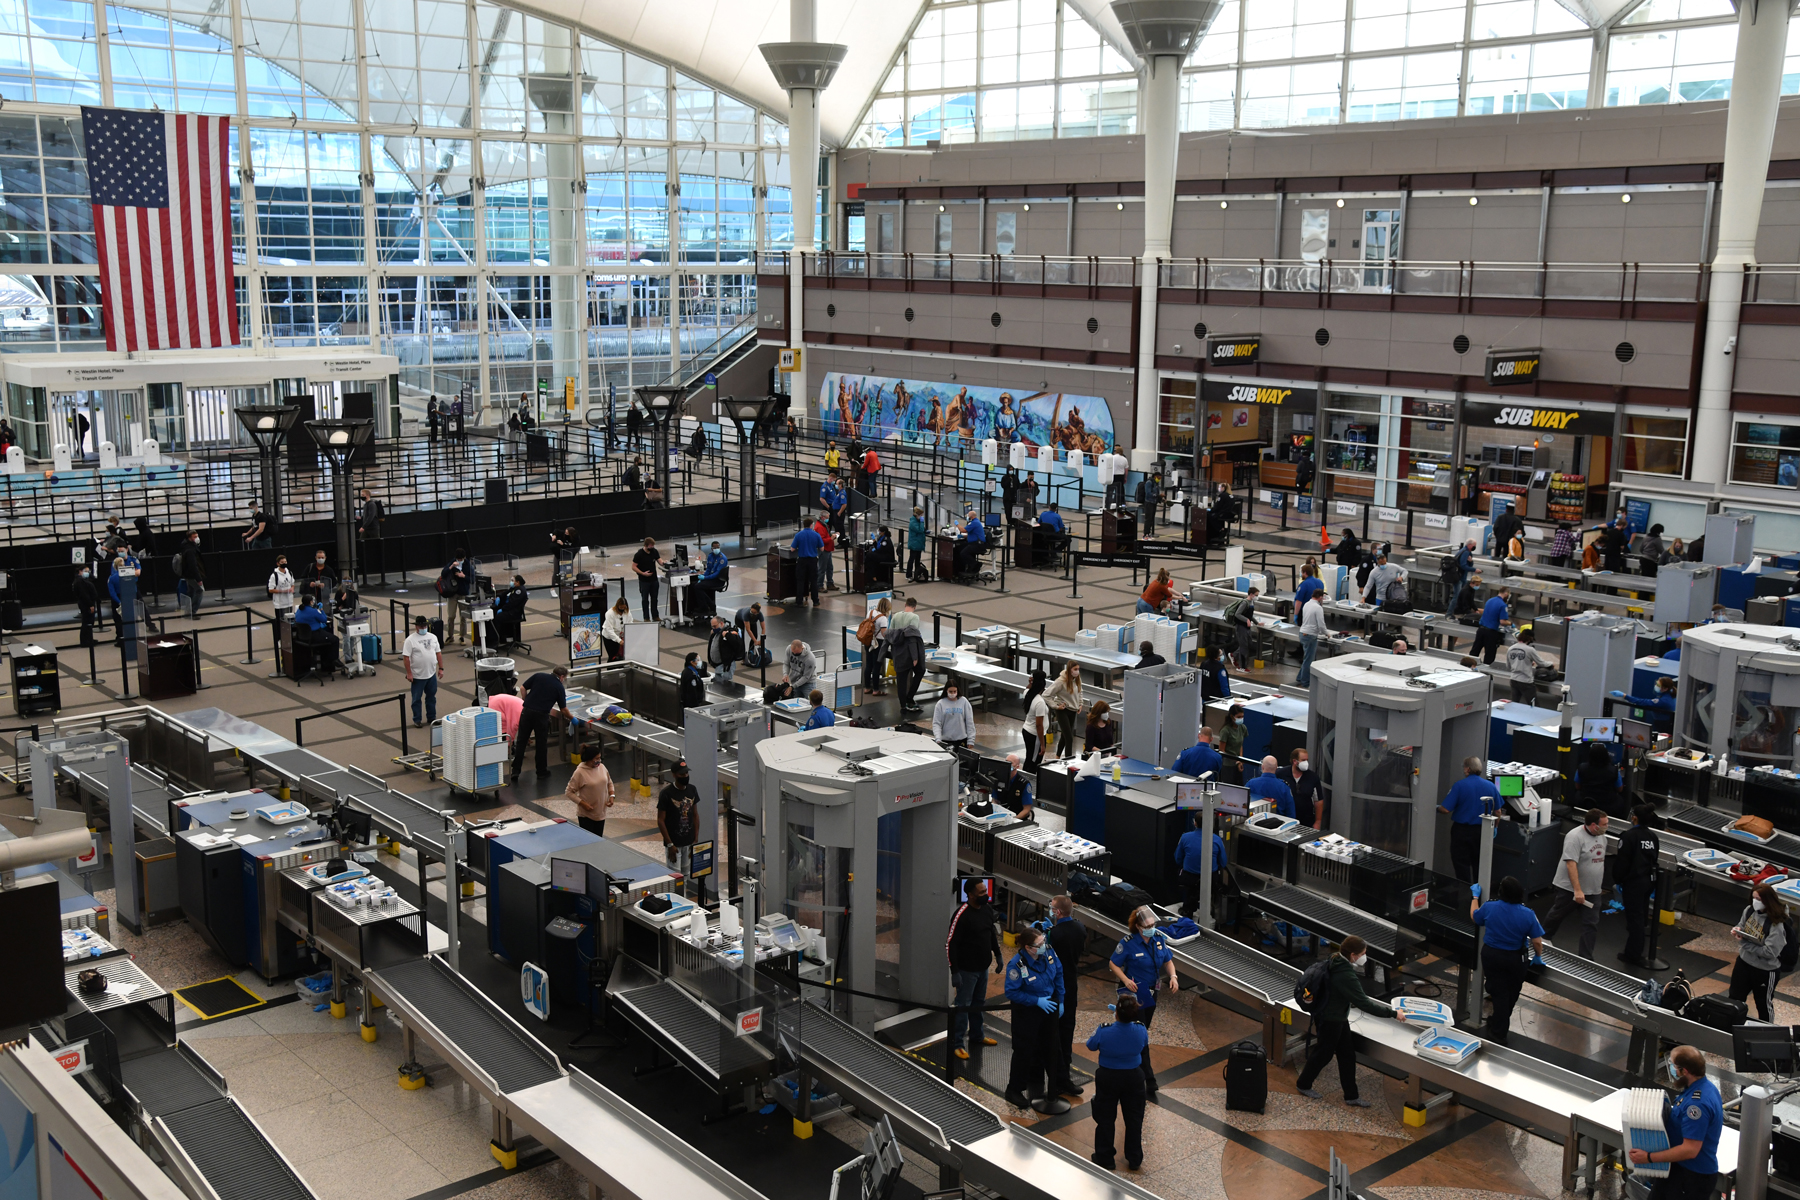 TSA crews are checking baggages of travelers at a security check point